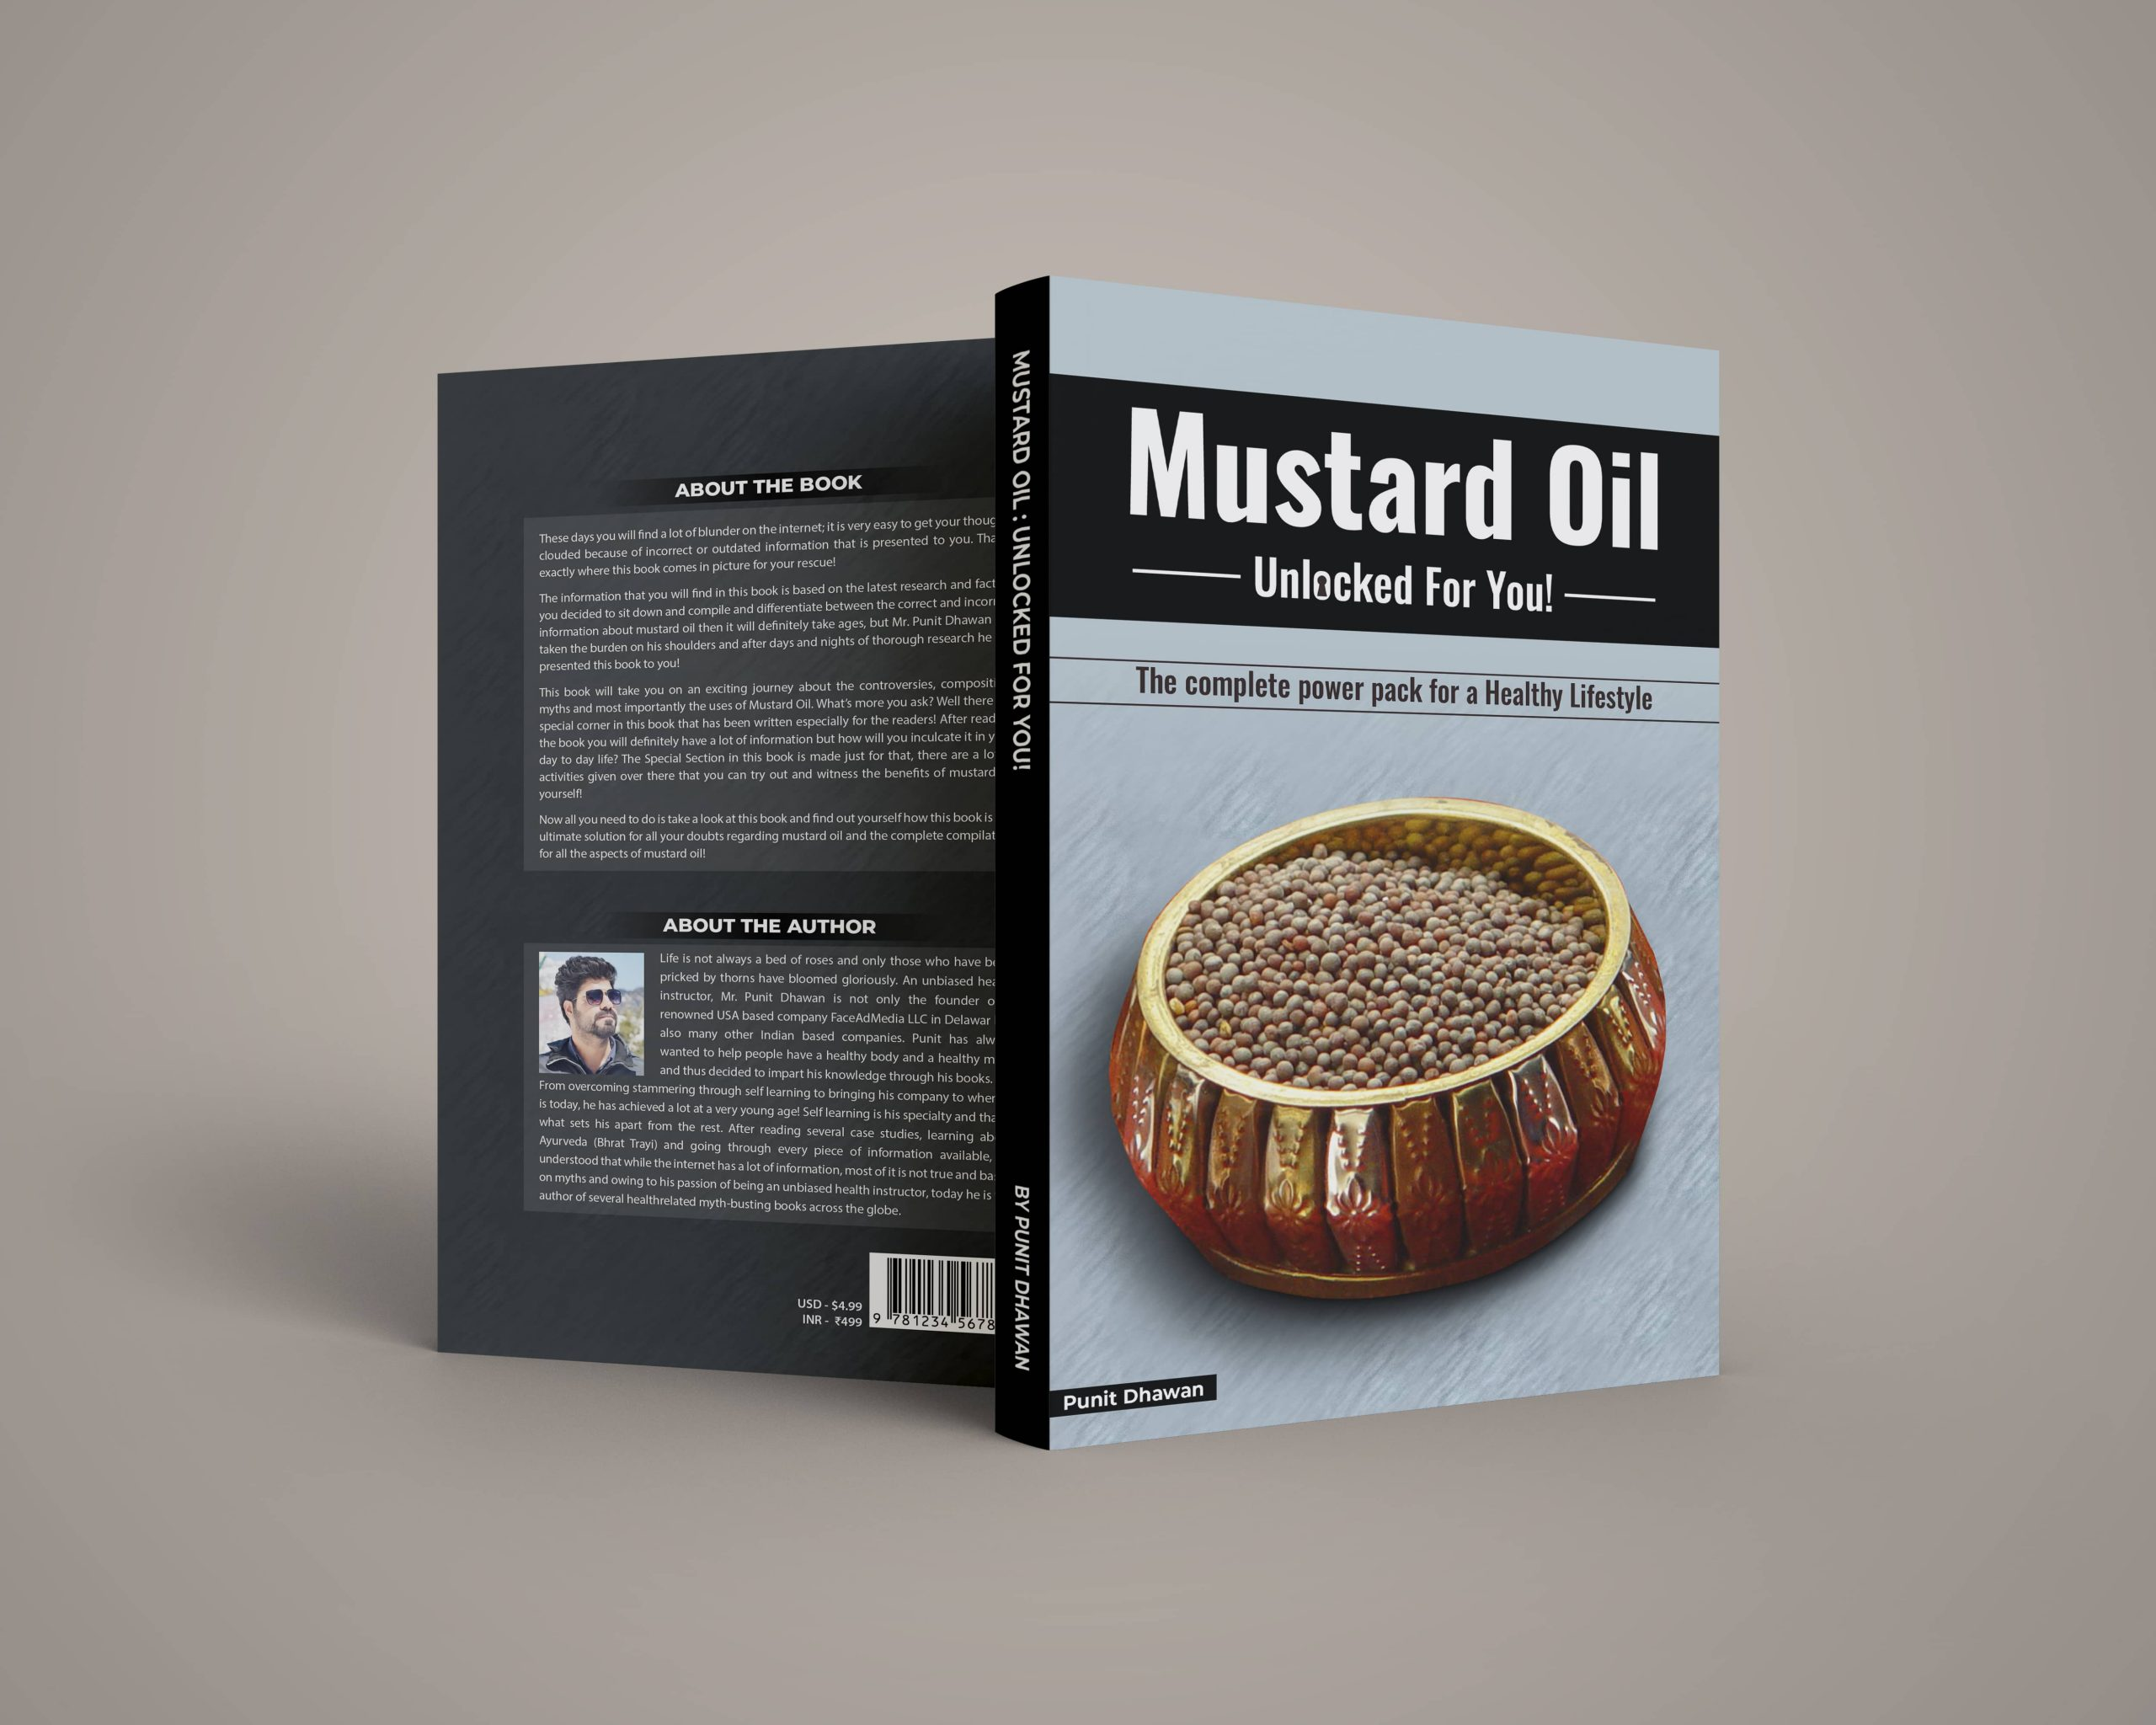 Mustard Oil Unlocked For You! The Complete Power Pack for a Healthy Lifestyle by Punit Dhawan